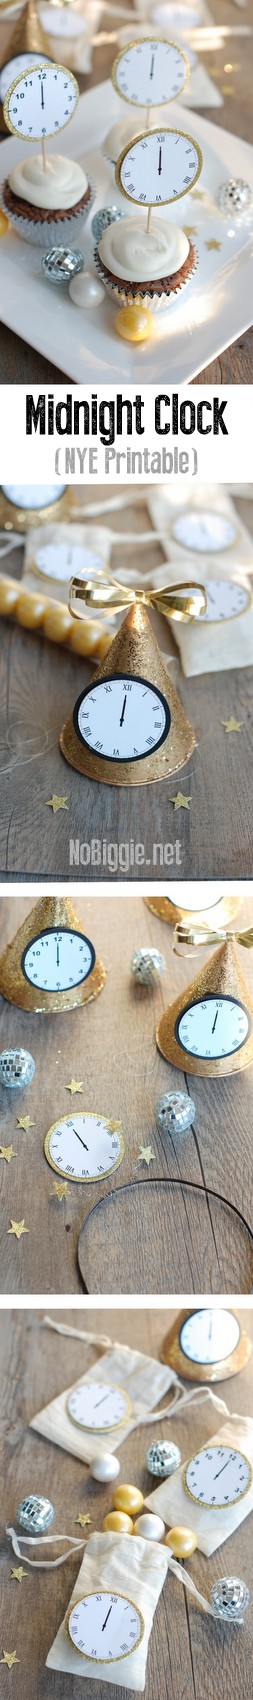 New Year's Eve Midnight Clock printable | NoBiggie.net